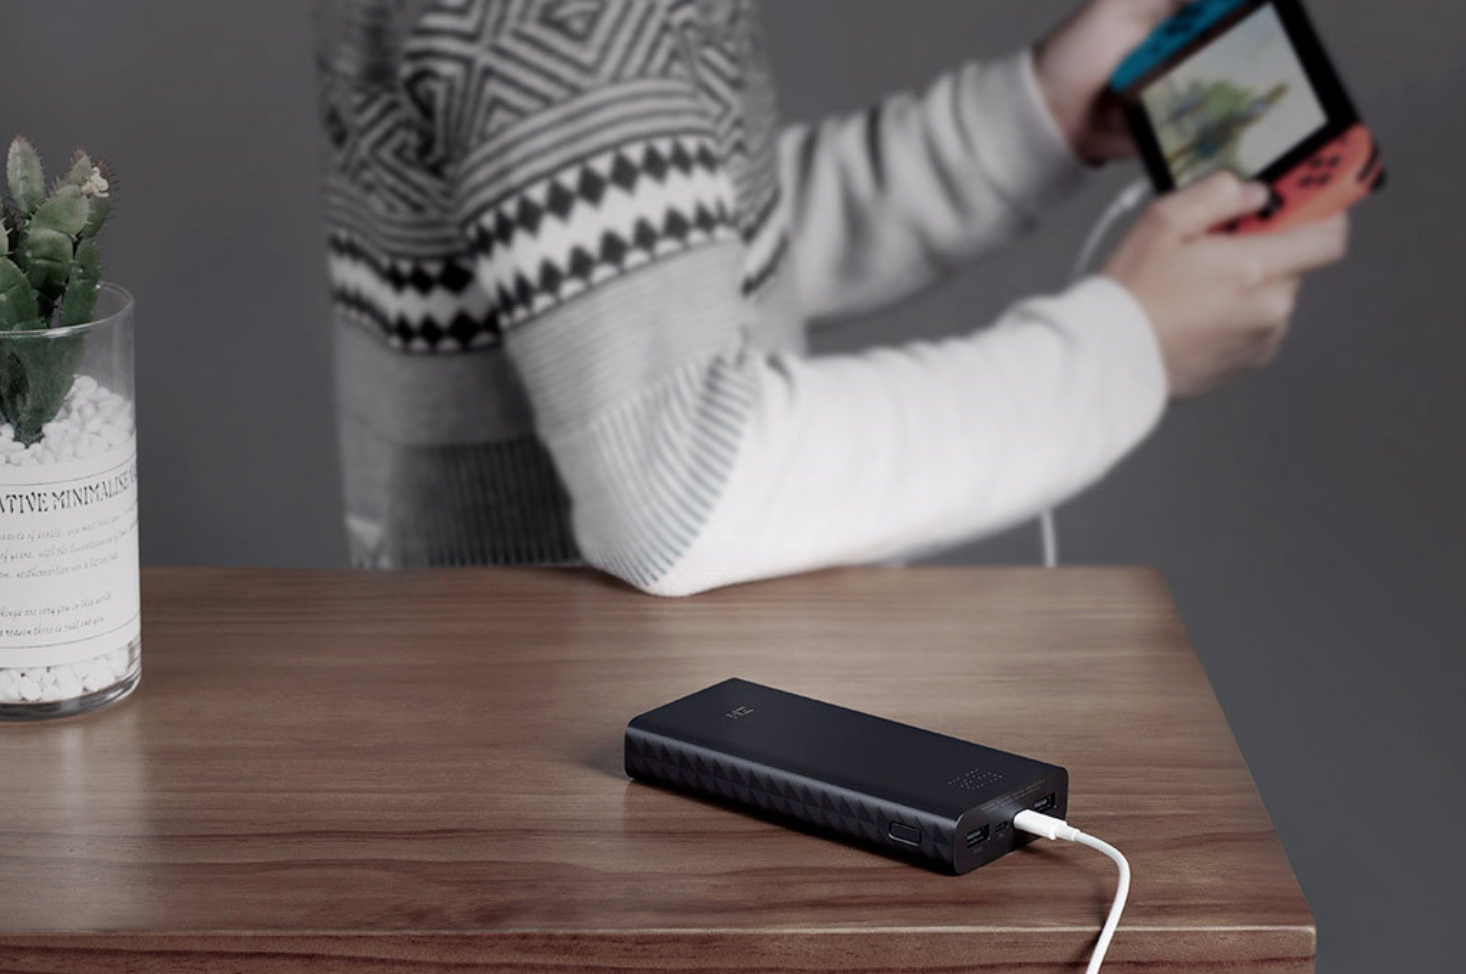 ZMI Aura powerbank 20000 mAh supporting Quick Charge 4.0